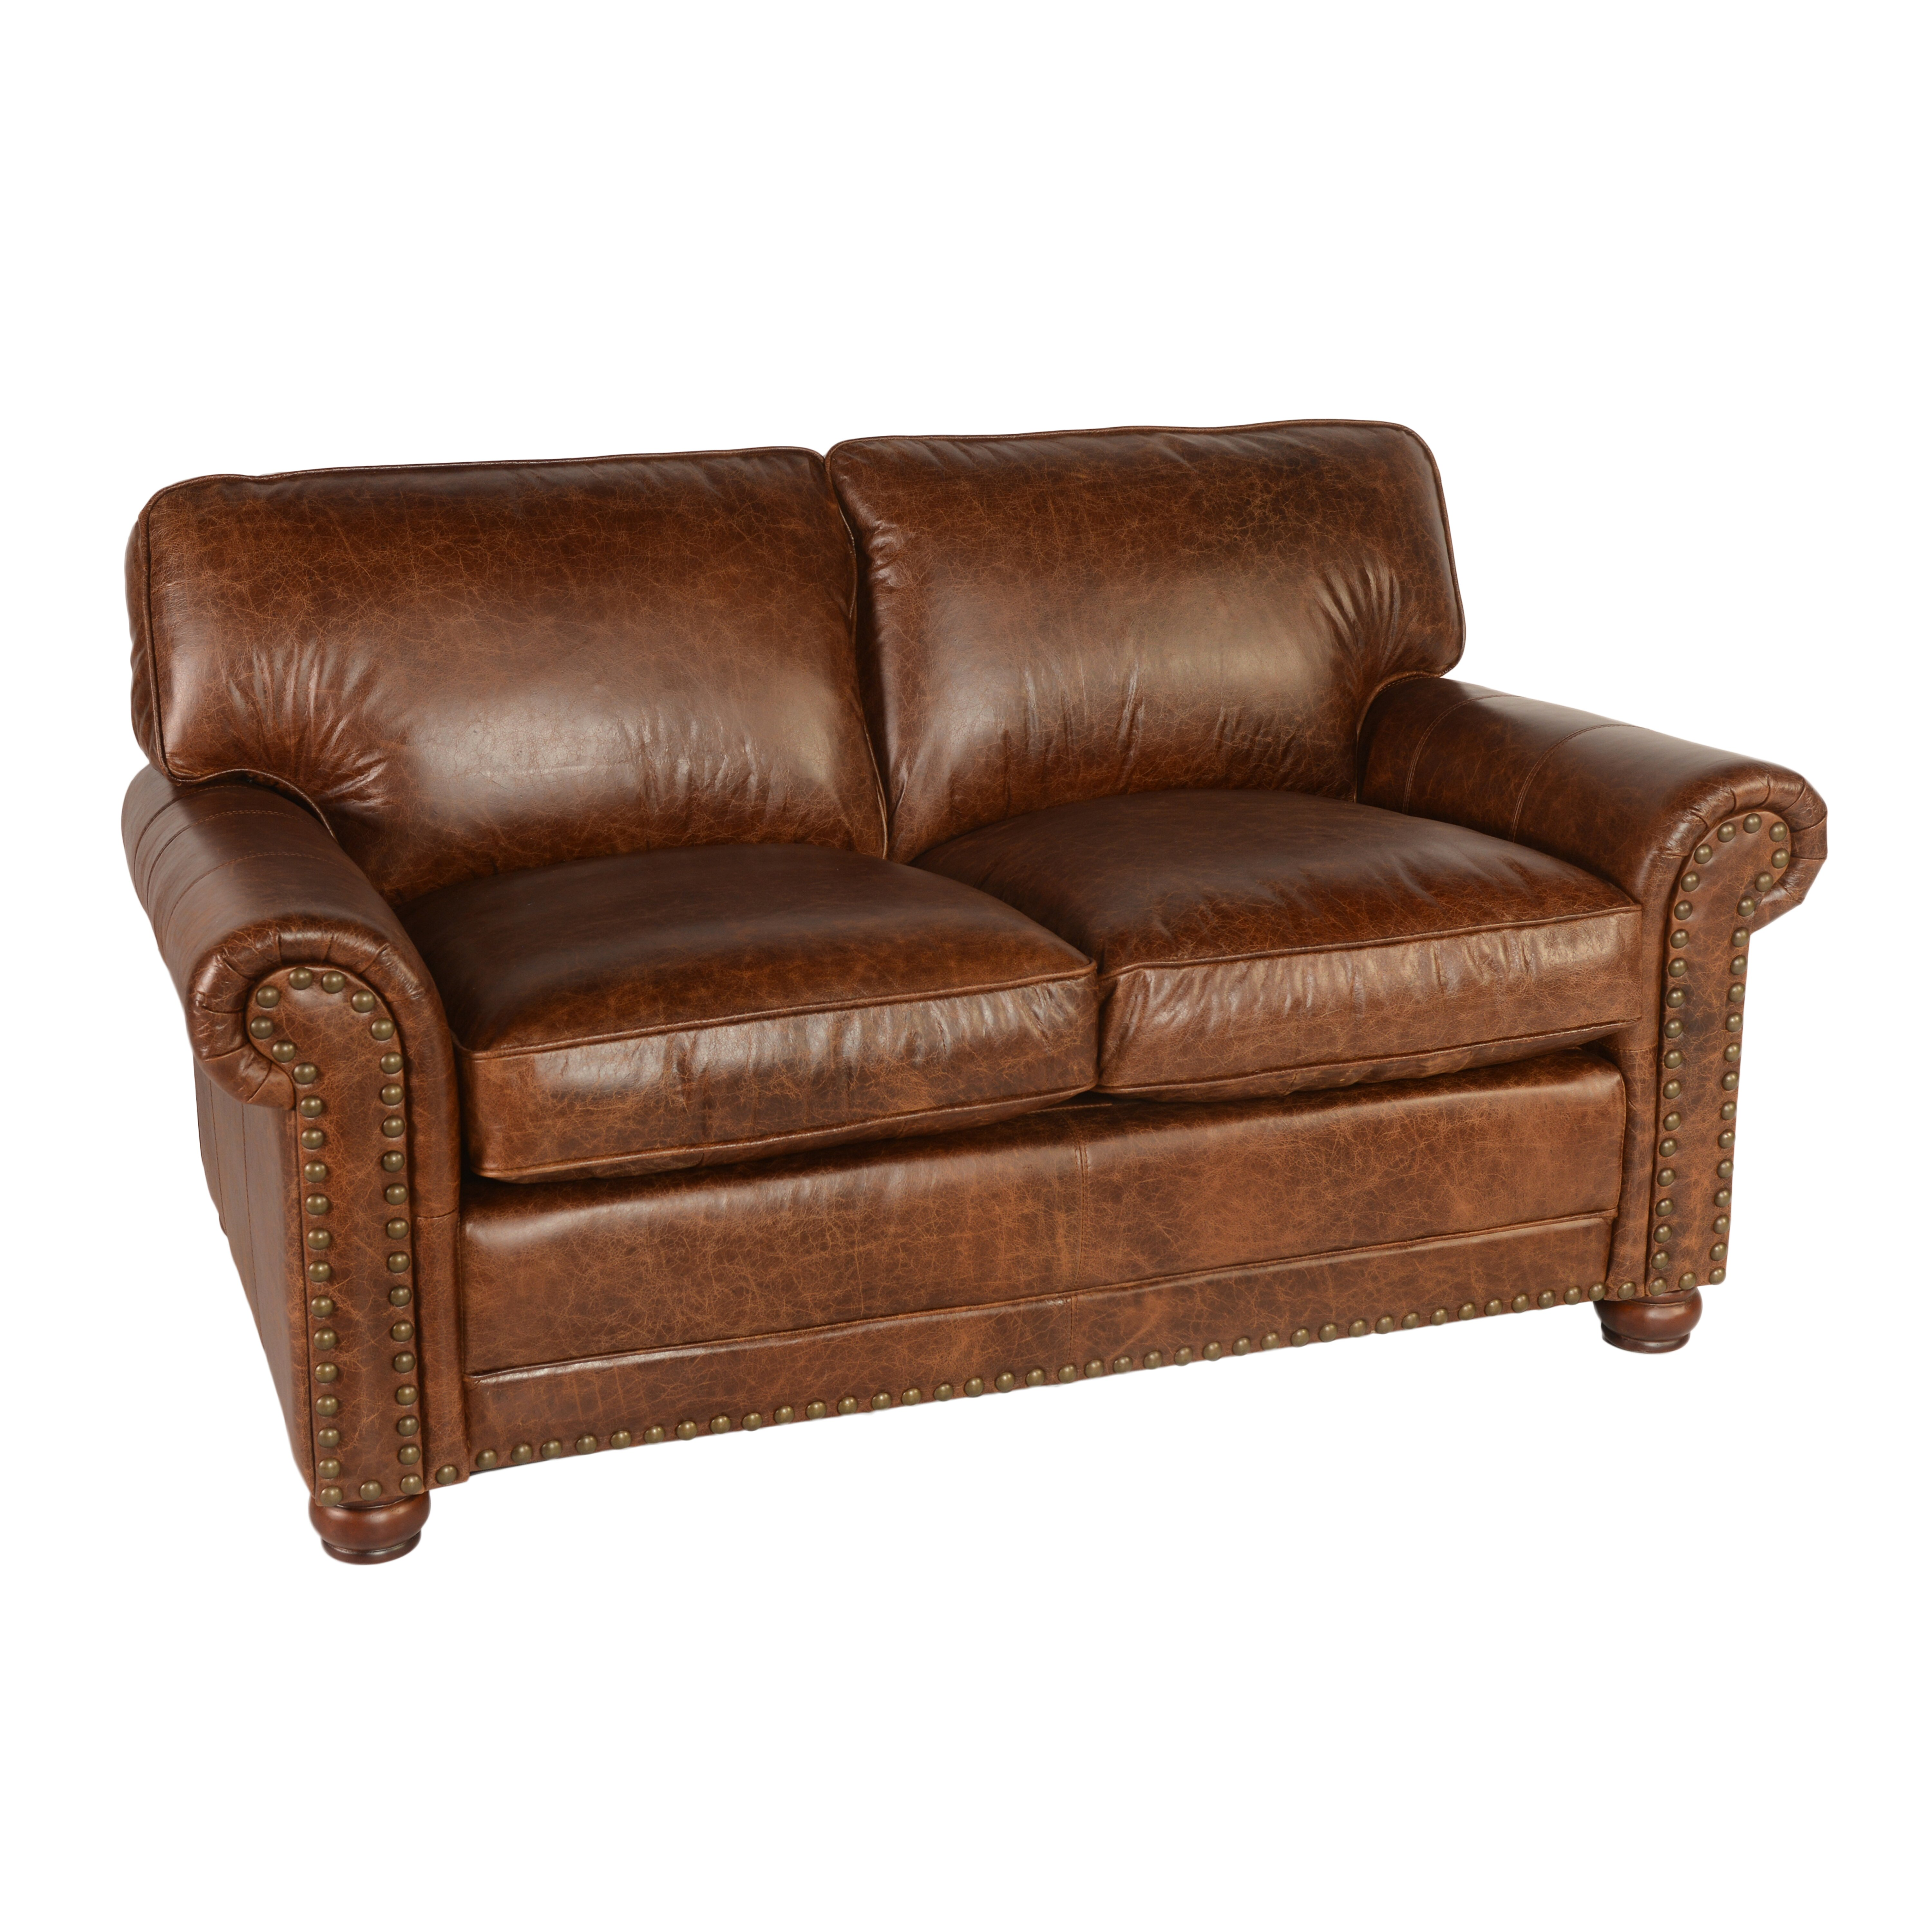 Lazzaro leather genesis leather loveseat reviews wayfair for Leather loveseat